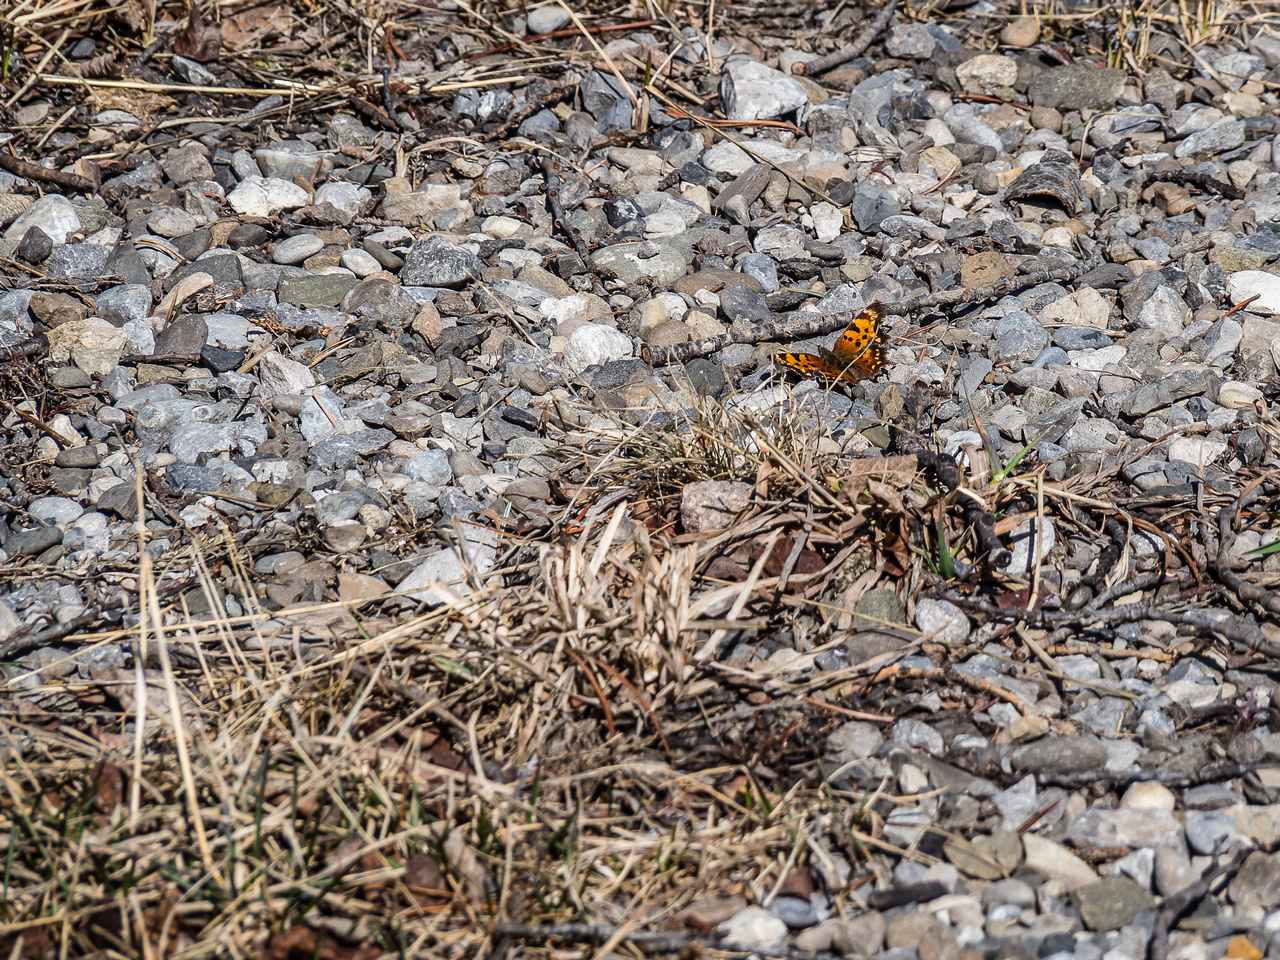 A ton of butterflies were enjoying the warm rocks on the exit road to the parking lot.